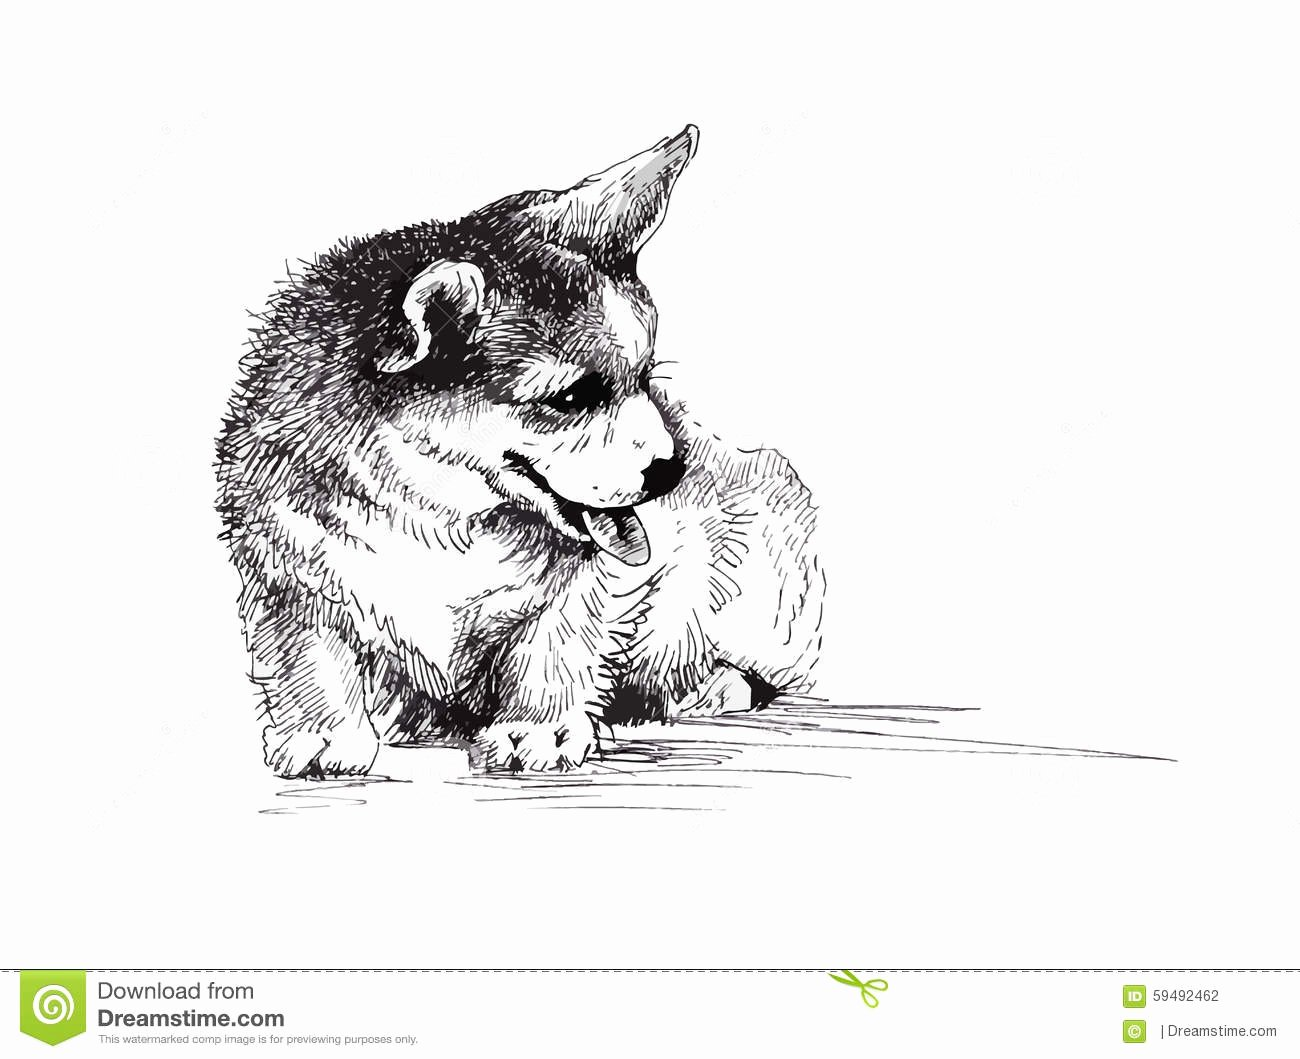 Black and White Illustration Beautiful Puppy Dog Hand Drawn Black and White Illustration Sketch Stock Vector Image